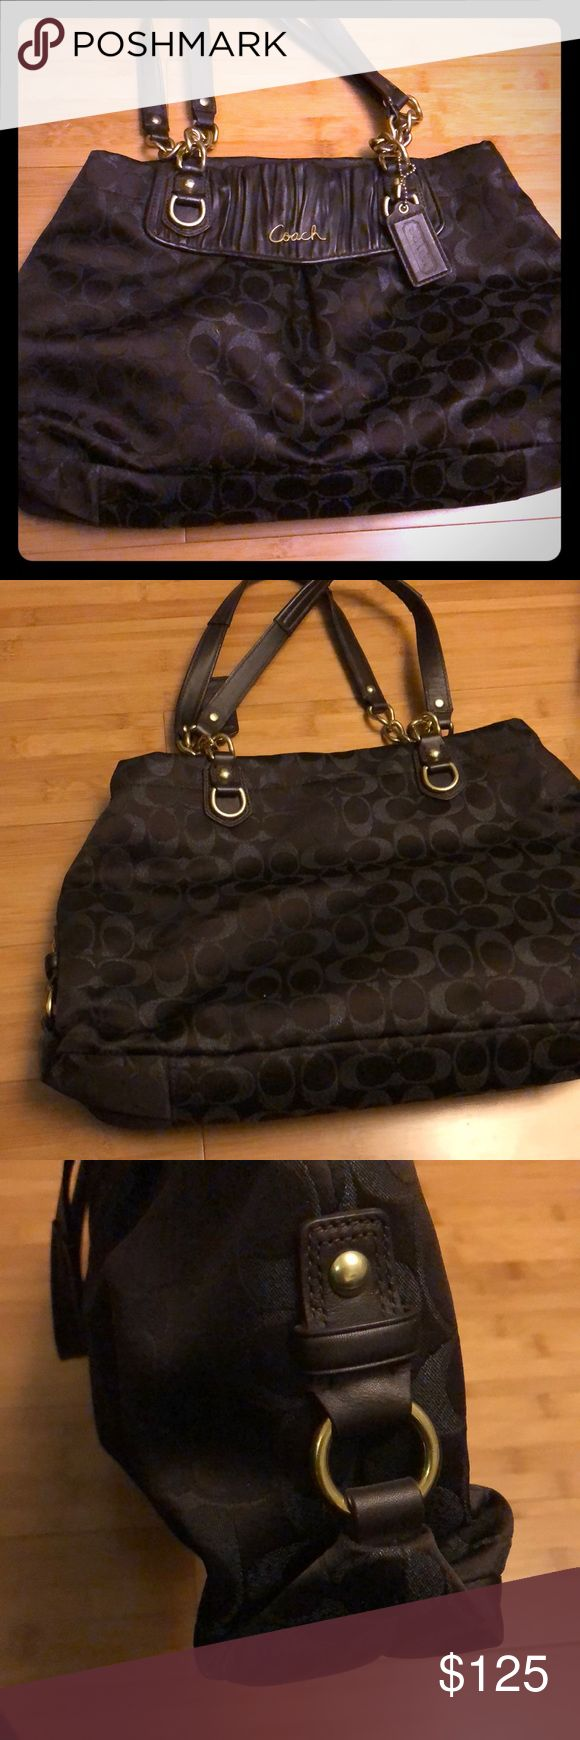 Coach tote Gently used Authentic coach tote bag with emblem detail. Gold lettering and chain Coach Bags Totes